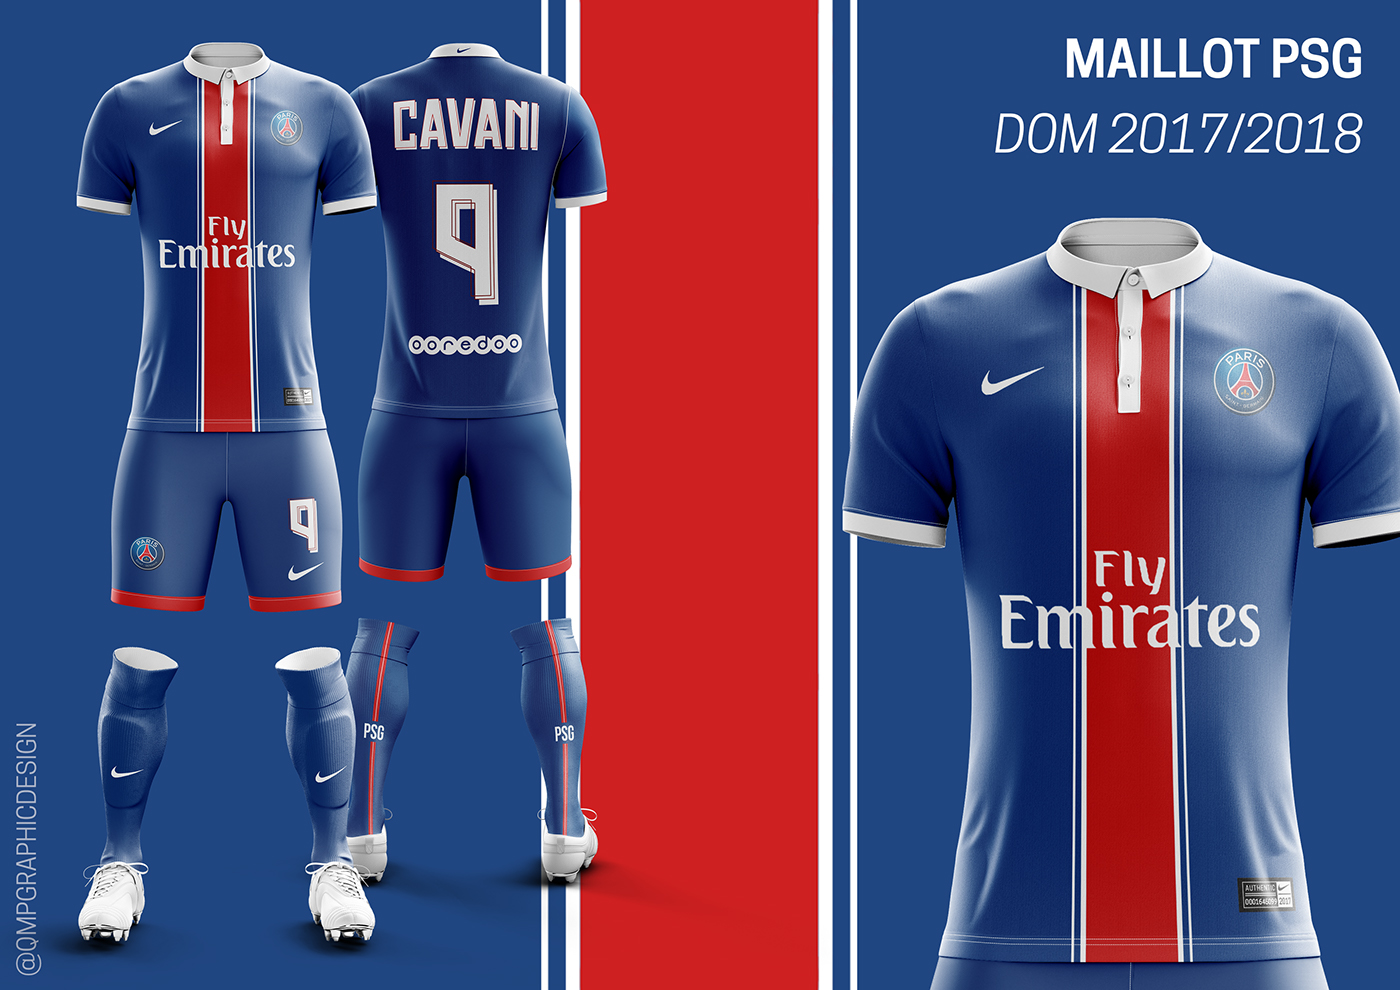 Maillot ligue 1 2017 2018 on behance for Maillot exterieur psg